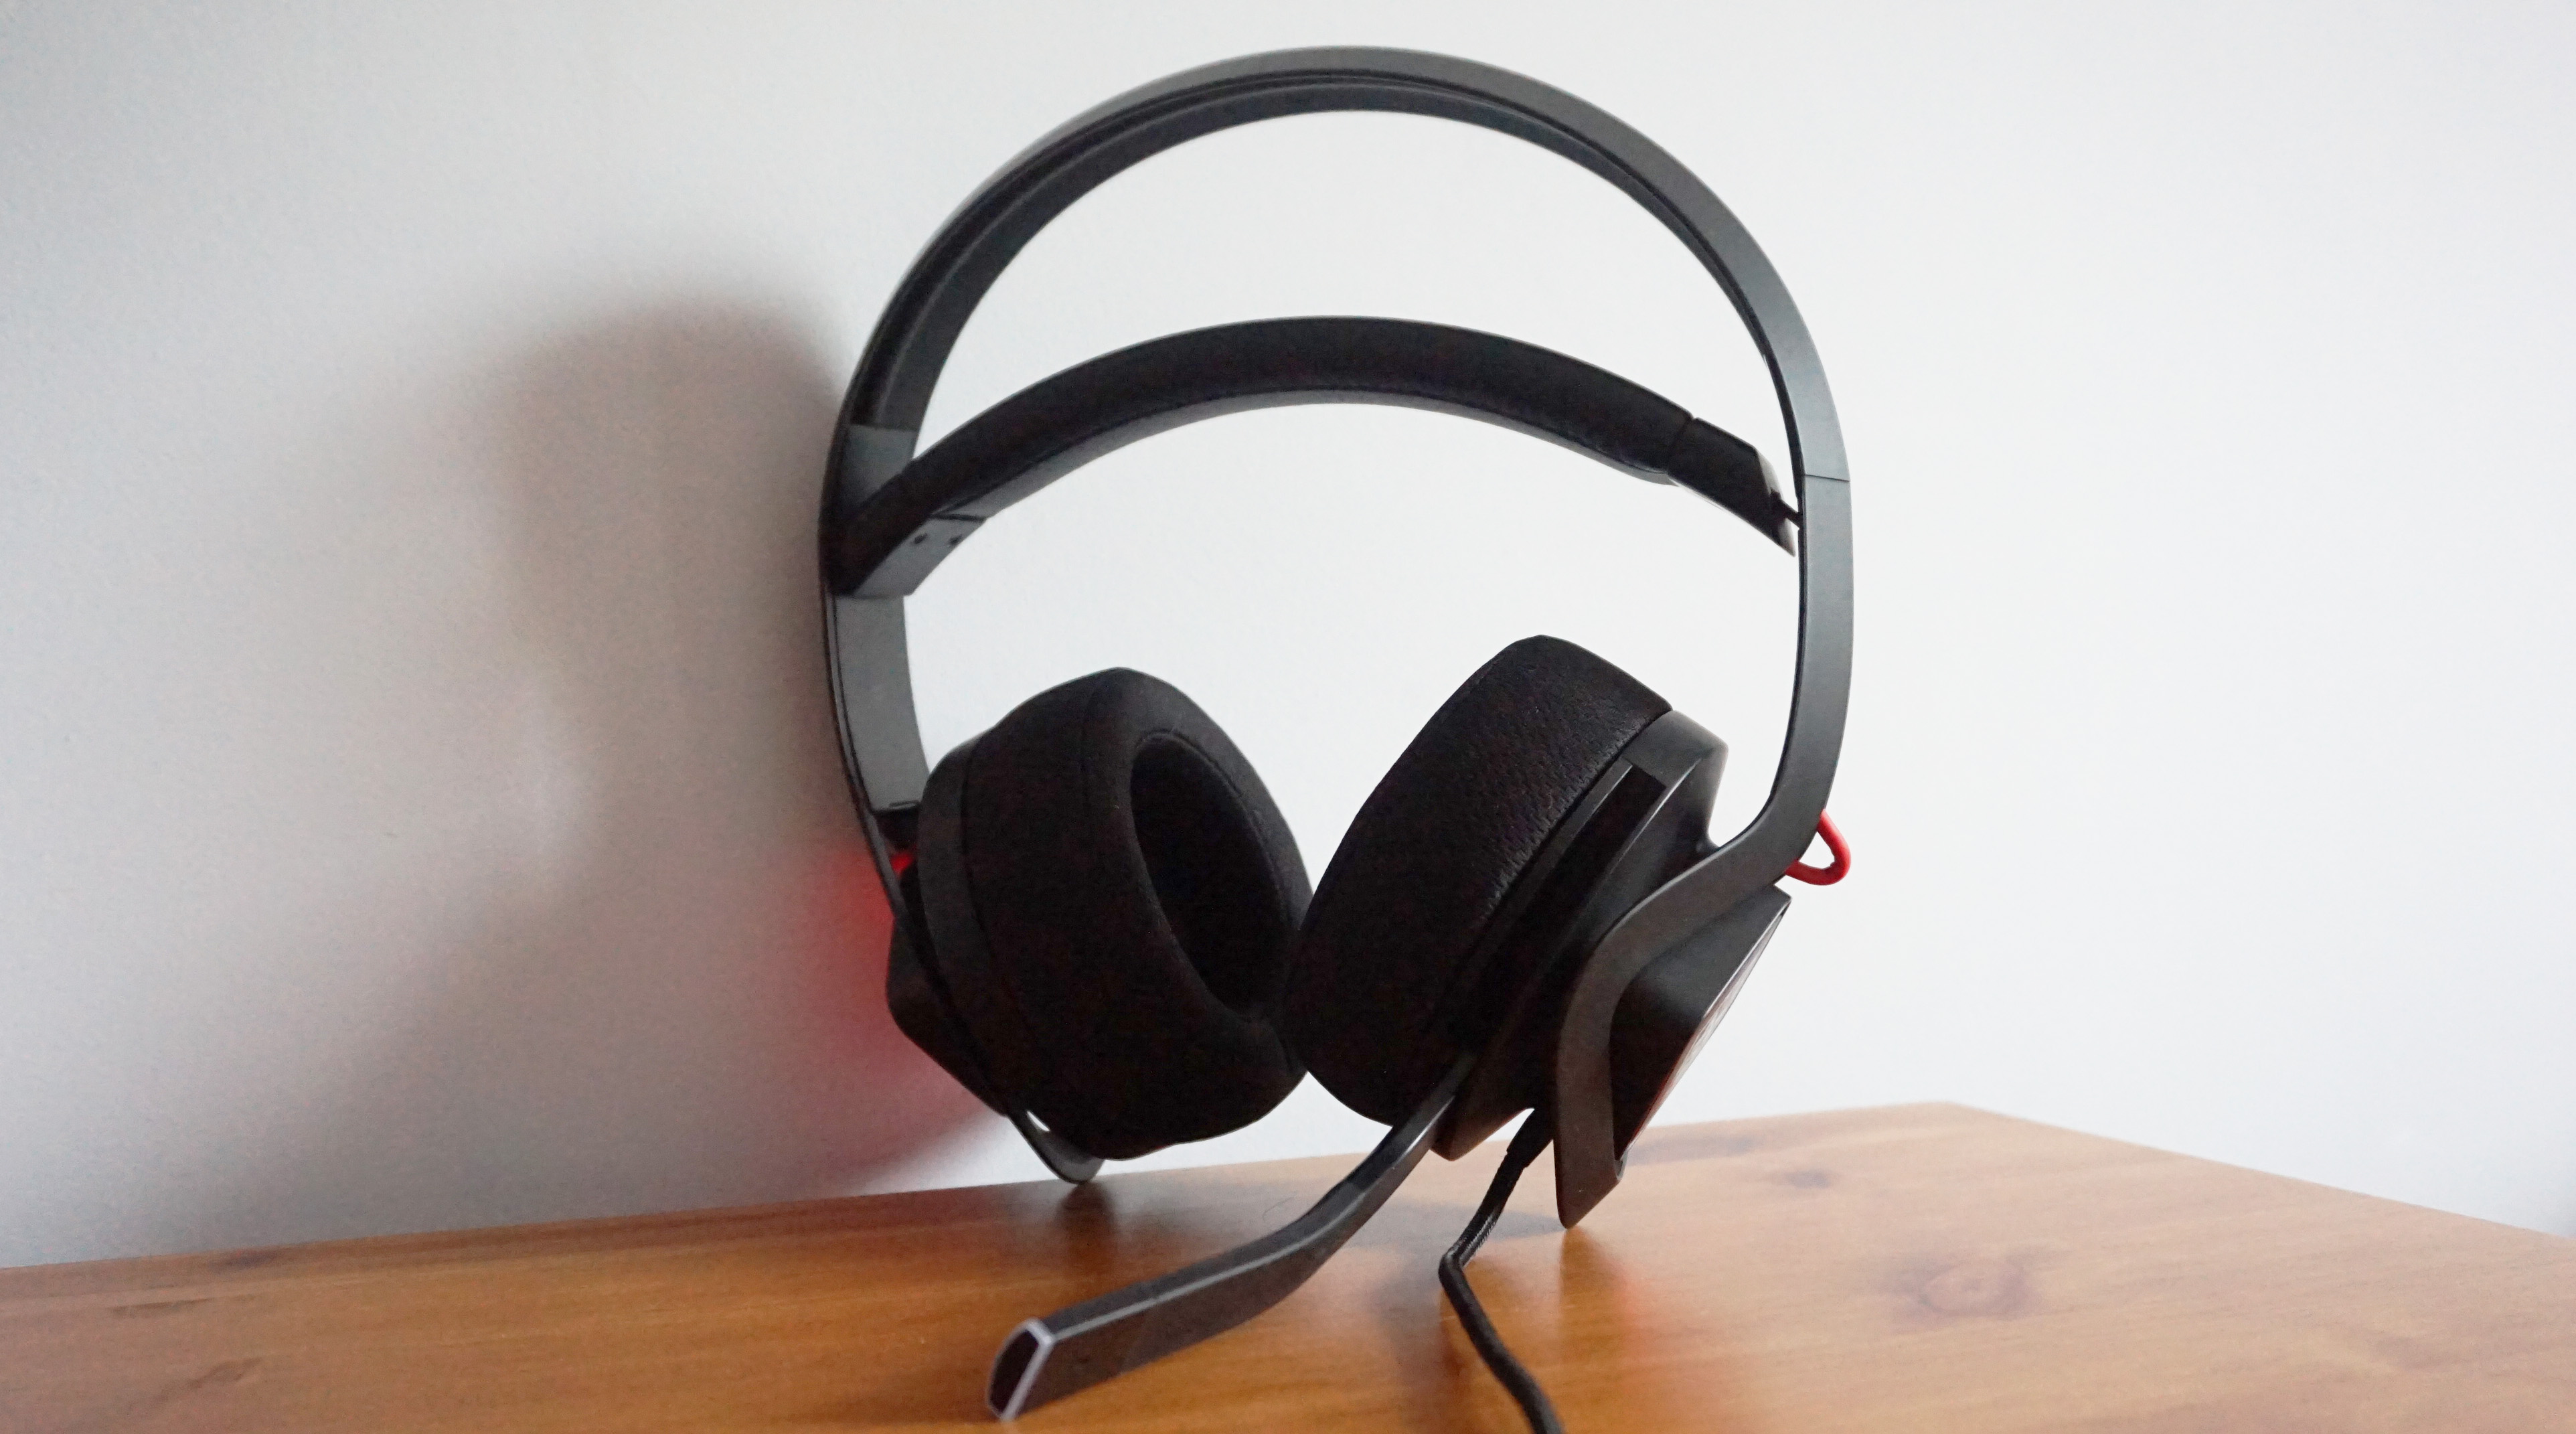 HP Omen Mindframe review: The ear-cooling gaming headset that left